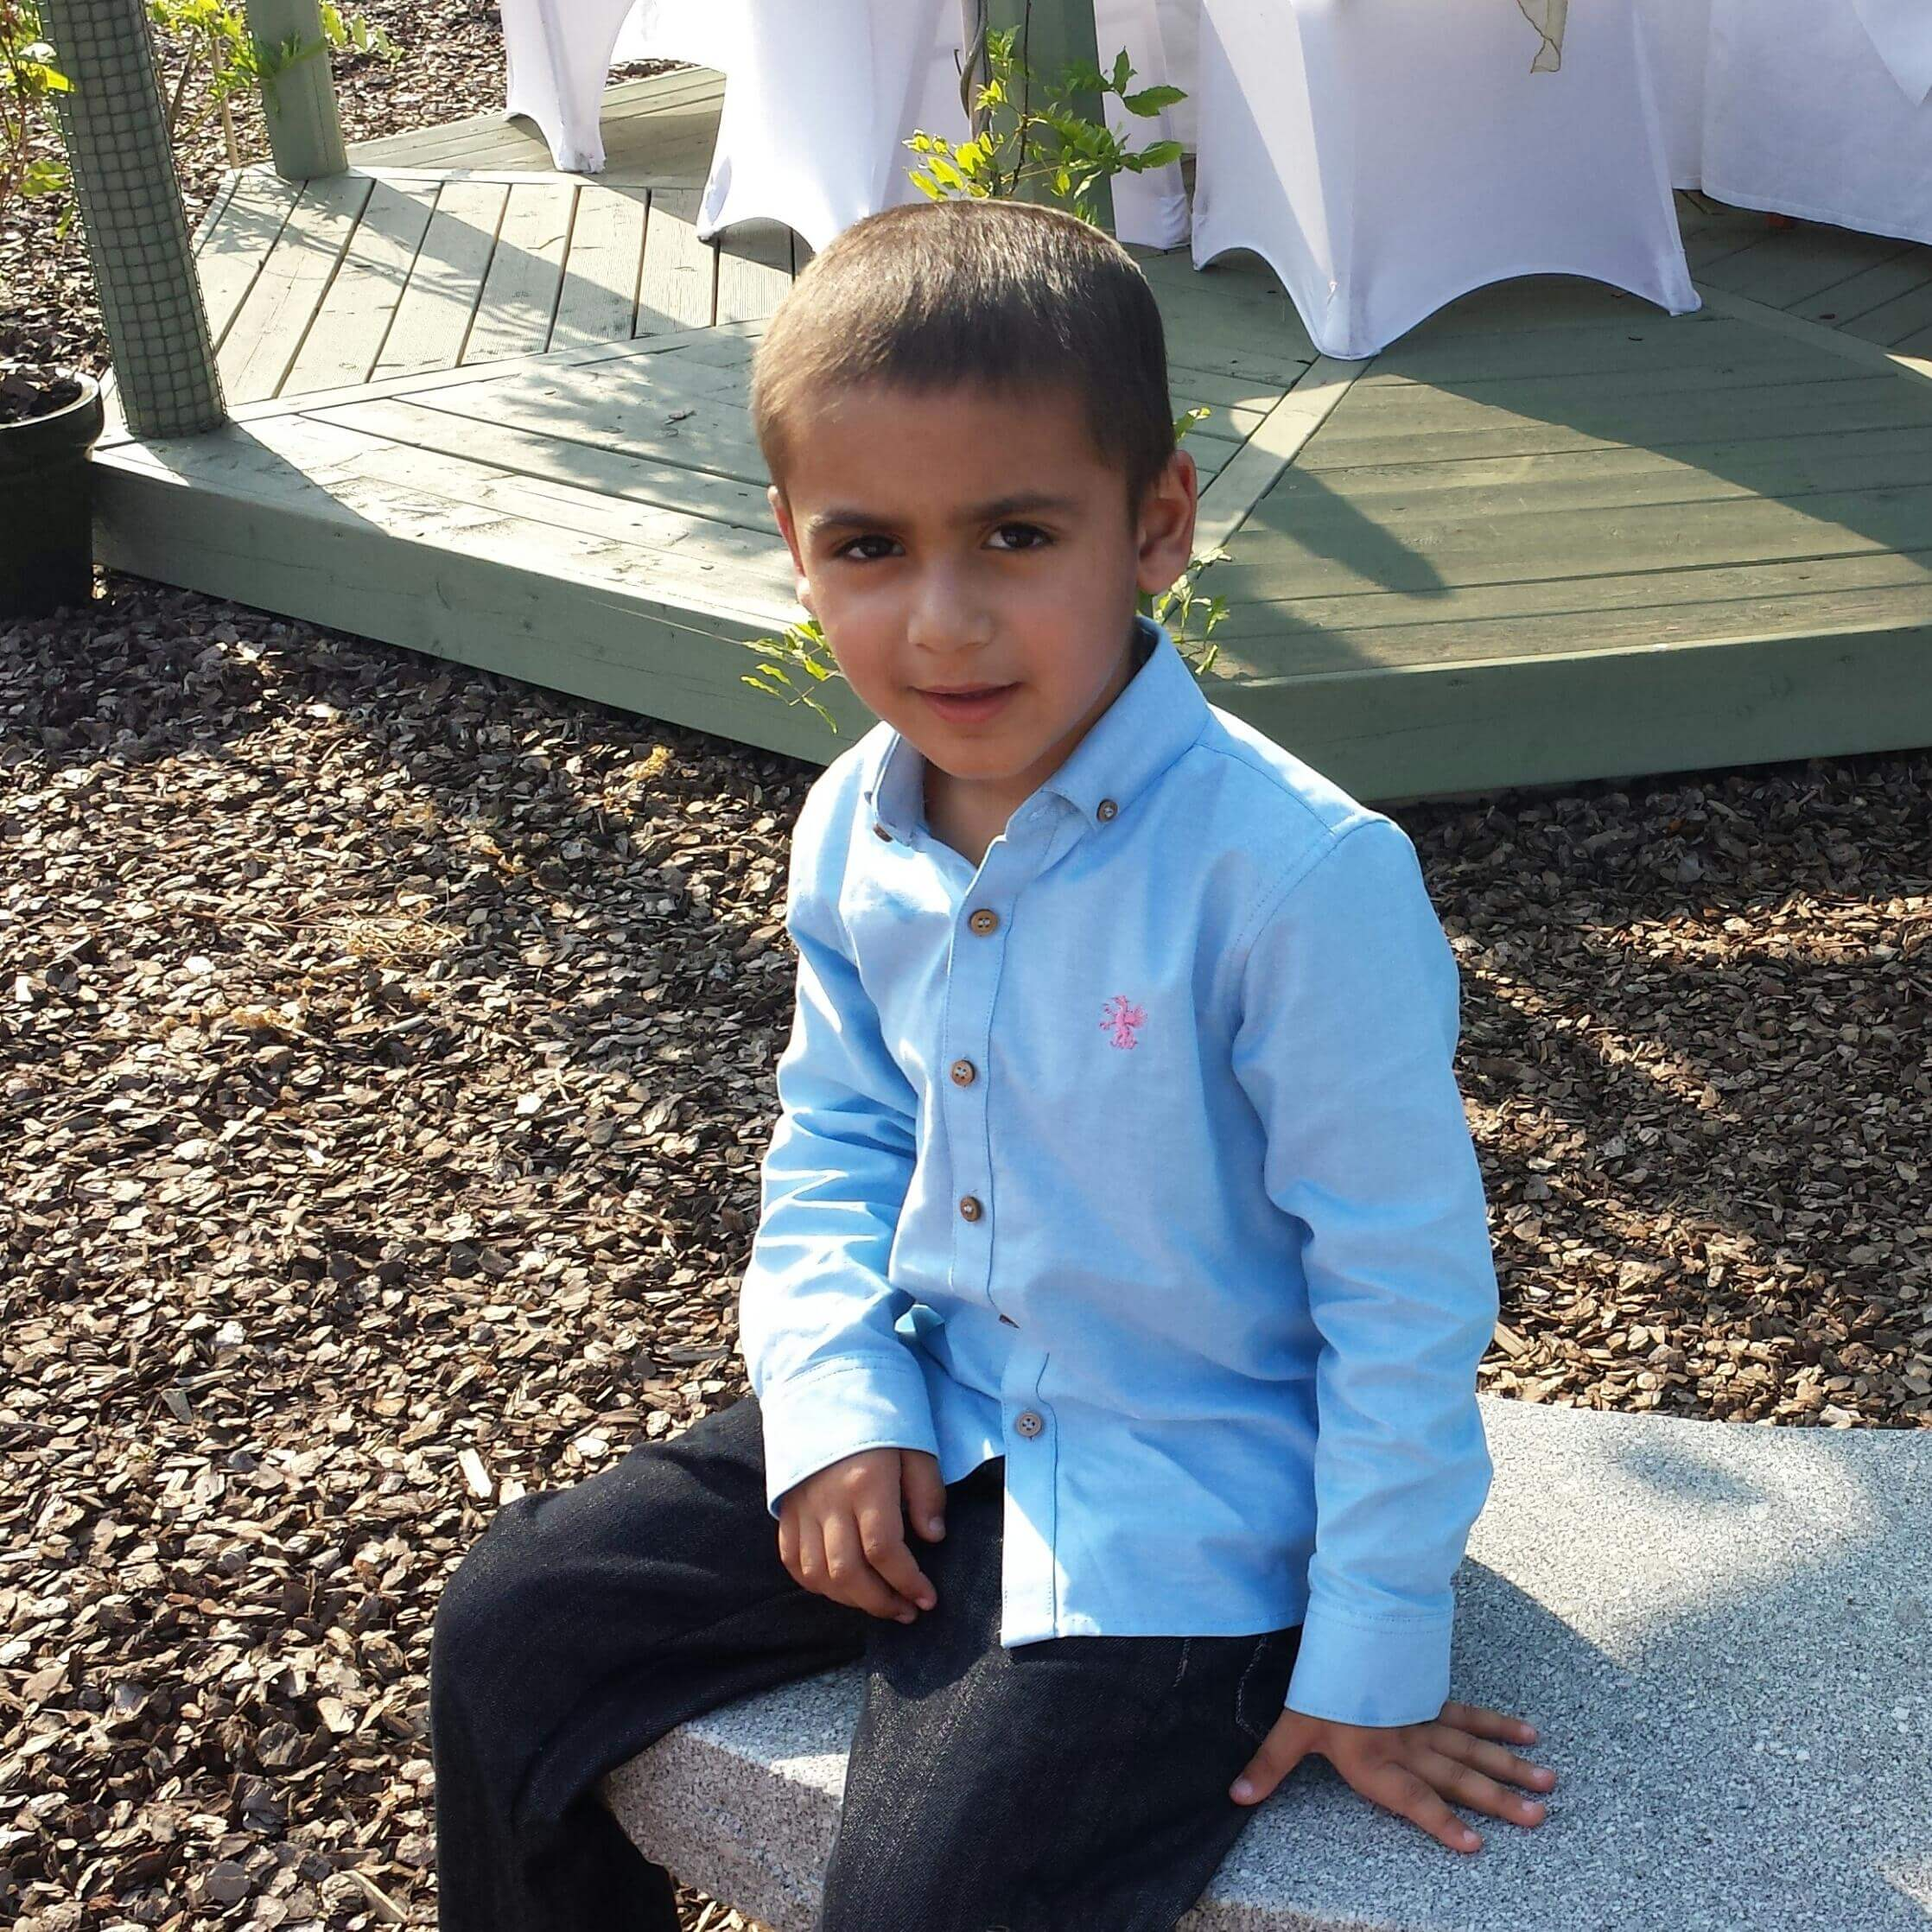 Raj was two and a half years old when he was diagnosed with a brain tumour